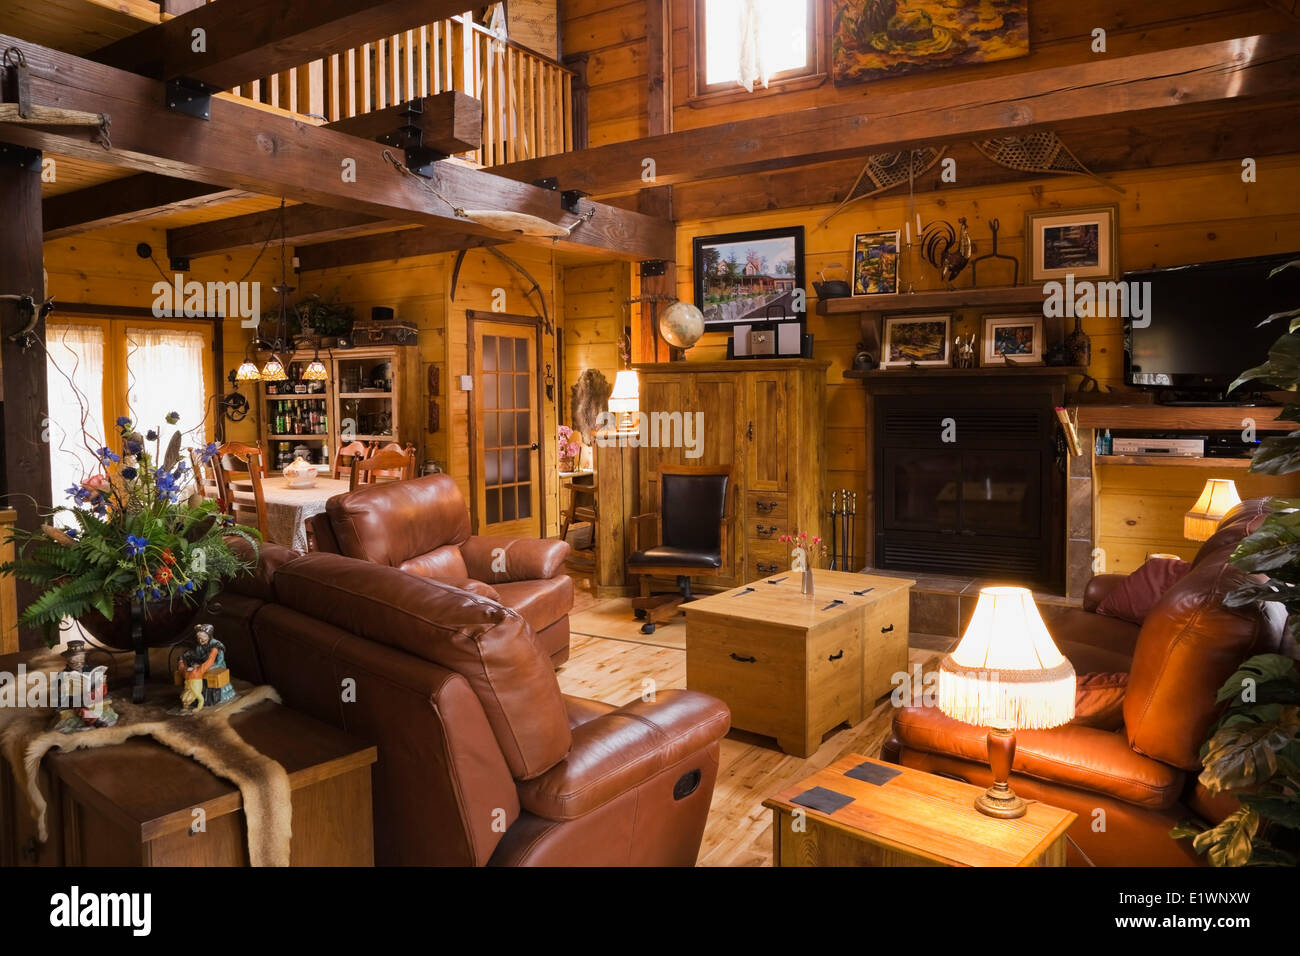 Living Room Inside A Canadiana Cottage Style Residential Stacked White Pine Log Home Quebec Canada This Image Is Property